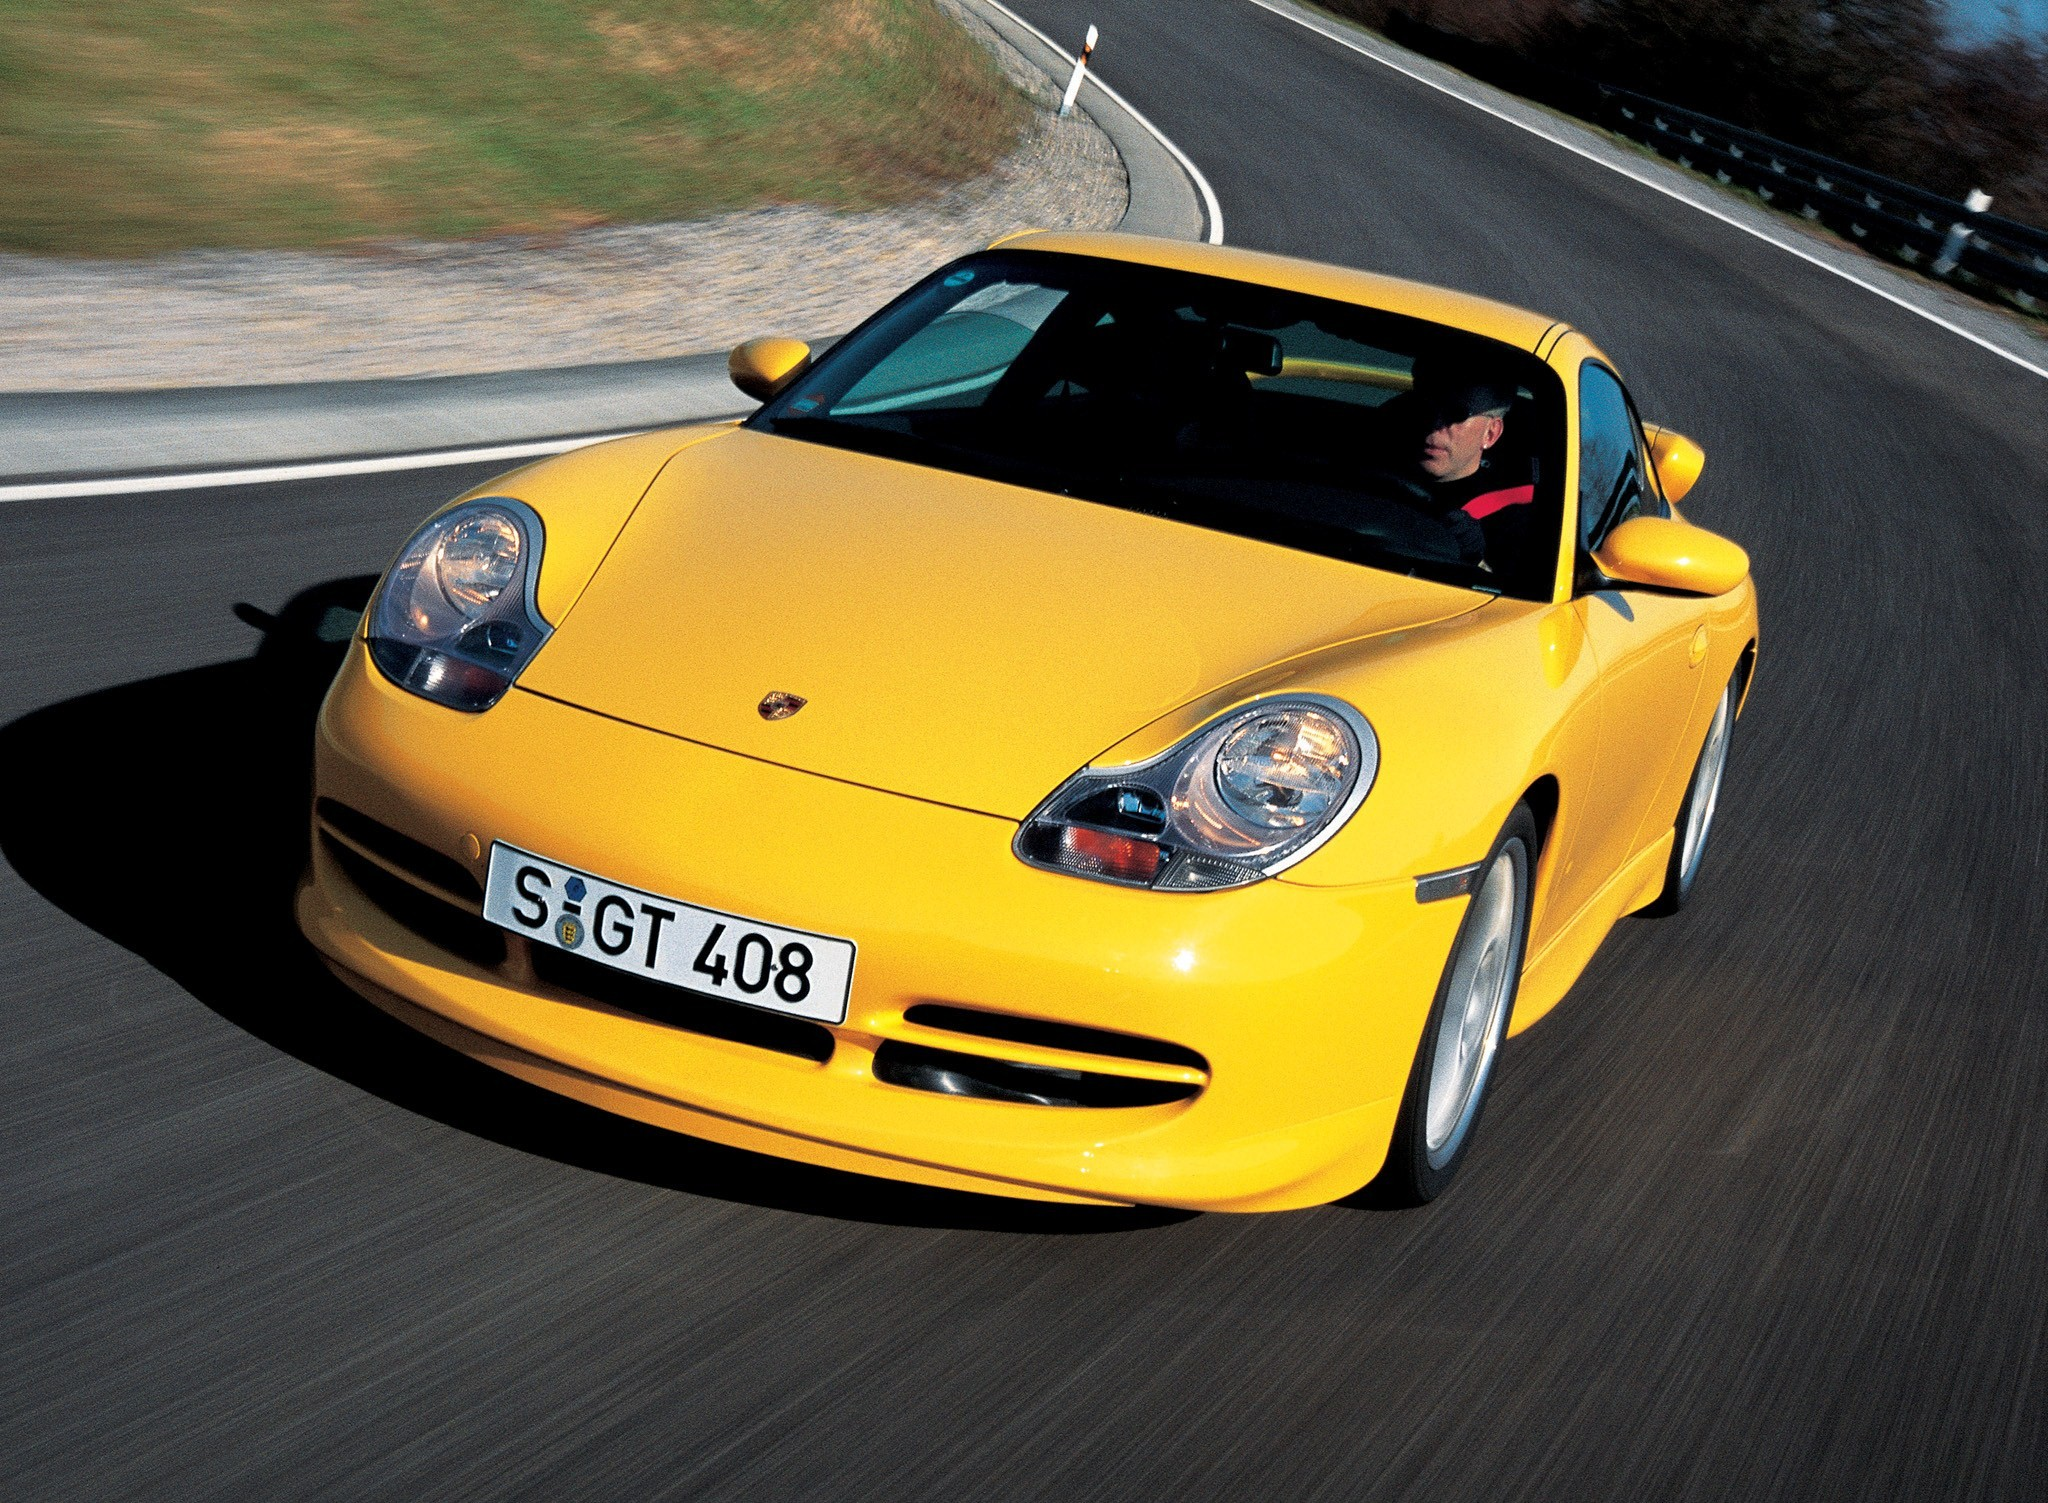 Porsche 911 GT3 (996) | Flickr - Photo Sharing!